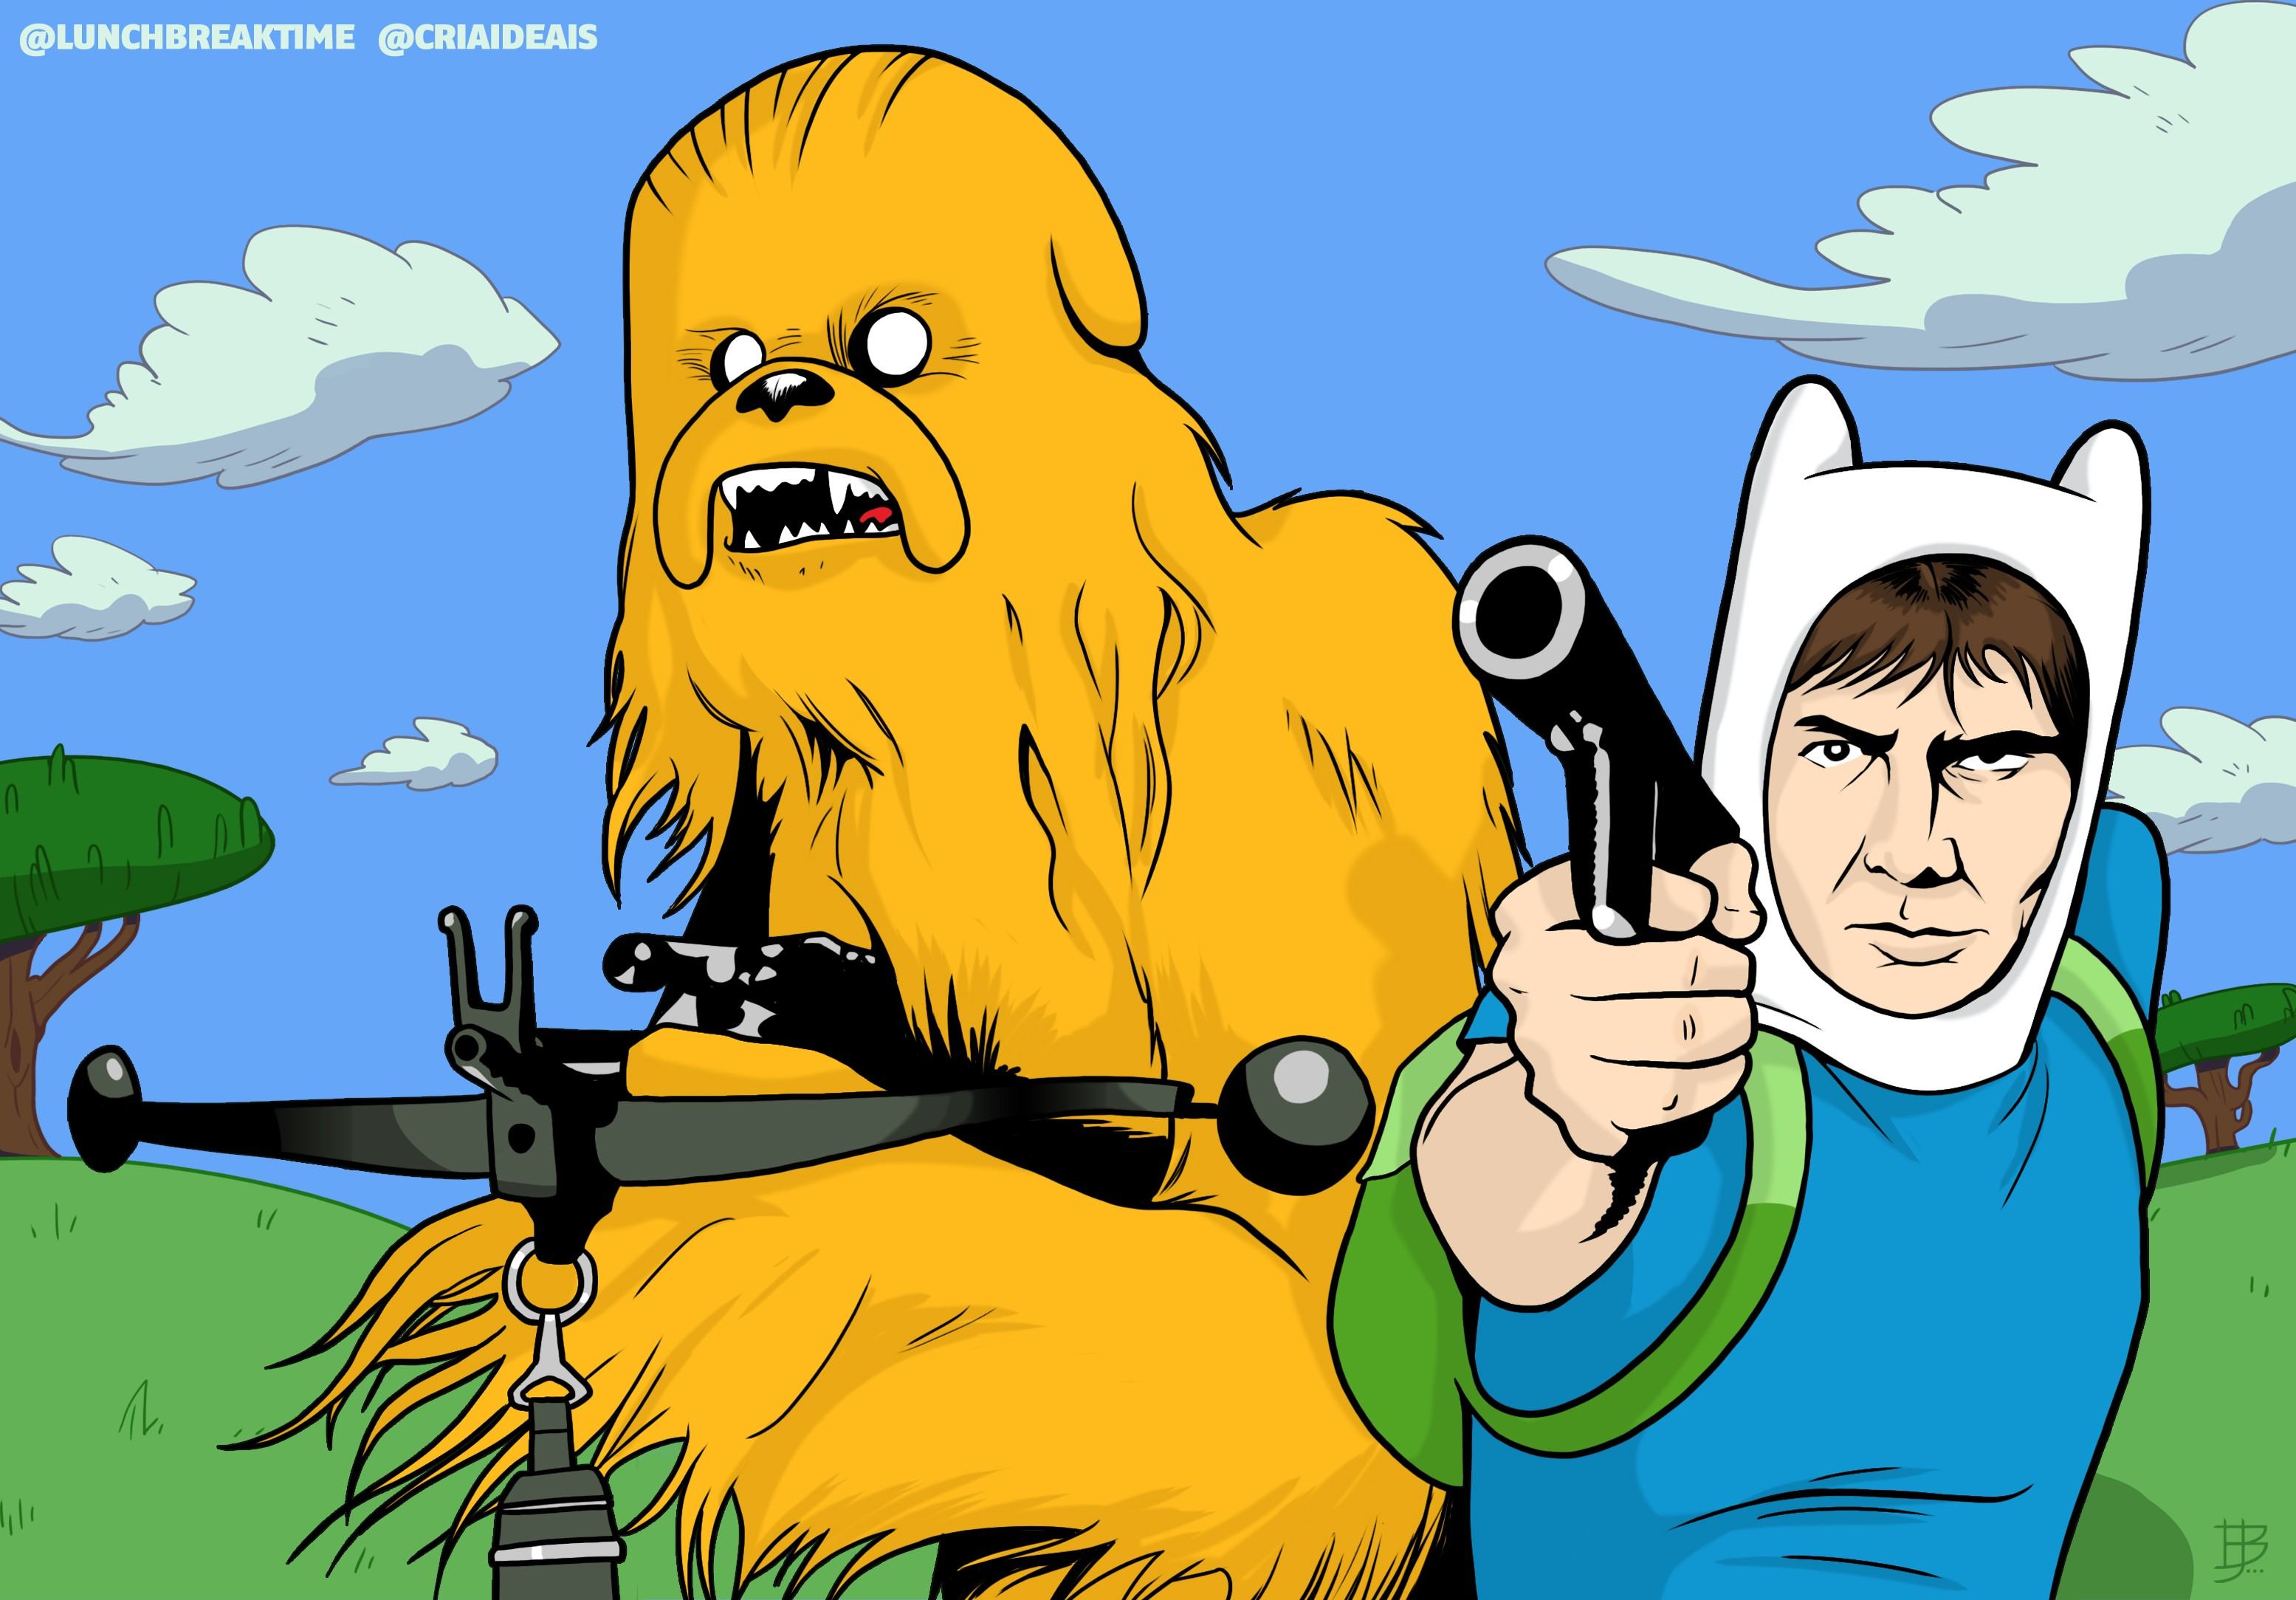 crossover, Adventure Time, Star Wars, Han Solo, Chewbacca, Jake the ...